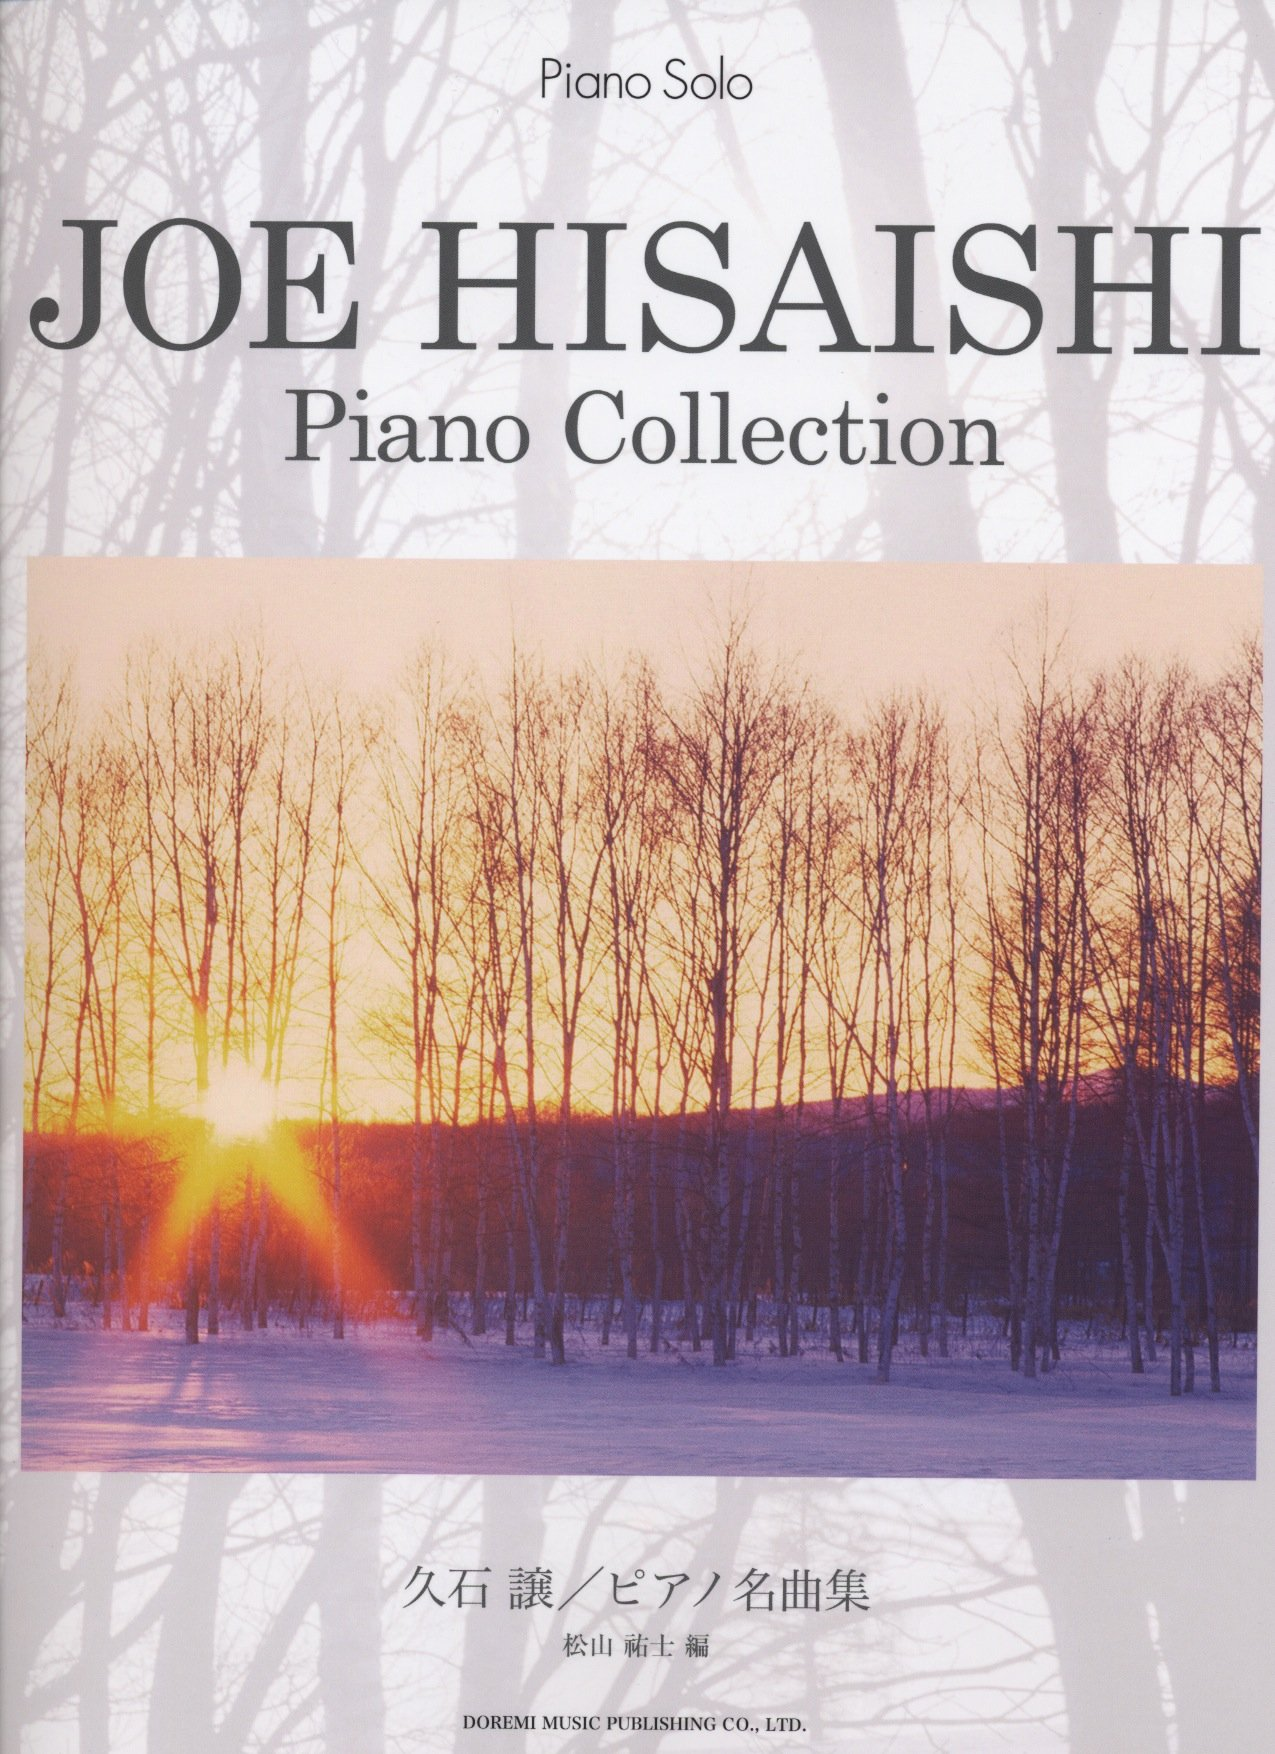 Joe hisaishi piano collection piano solo sheet music scores book joe hisaishi piano collection piano solo sheet music scores book yamaha 9784285124828 amazon books fandeluxe Image collections